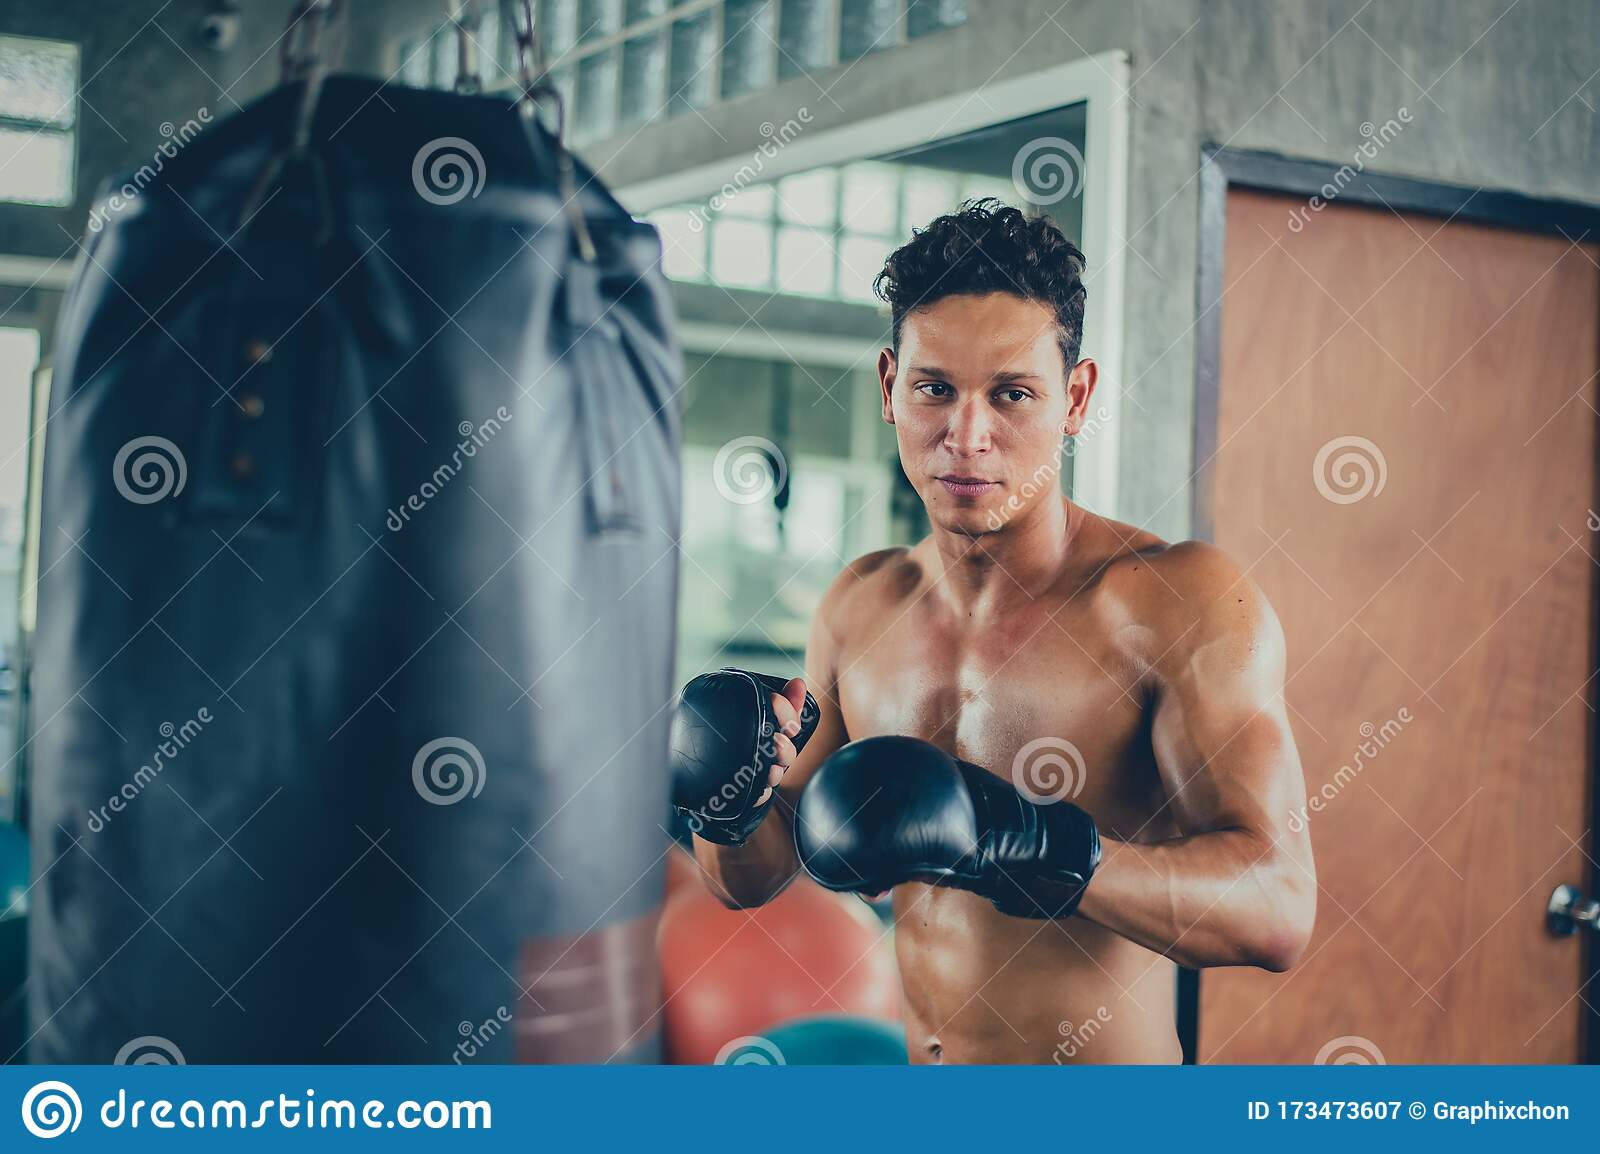 Sport Man Boxing At Fitness Gym Mental Health And